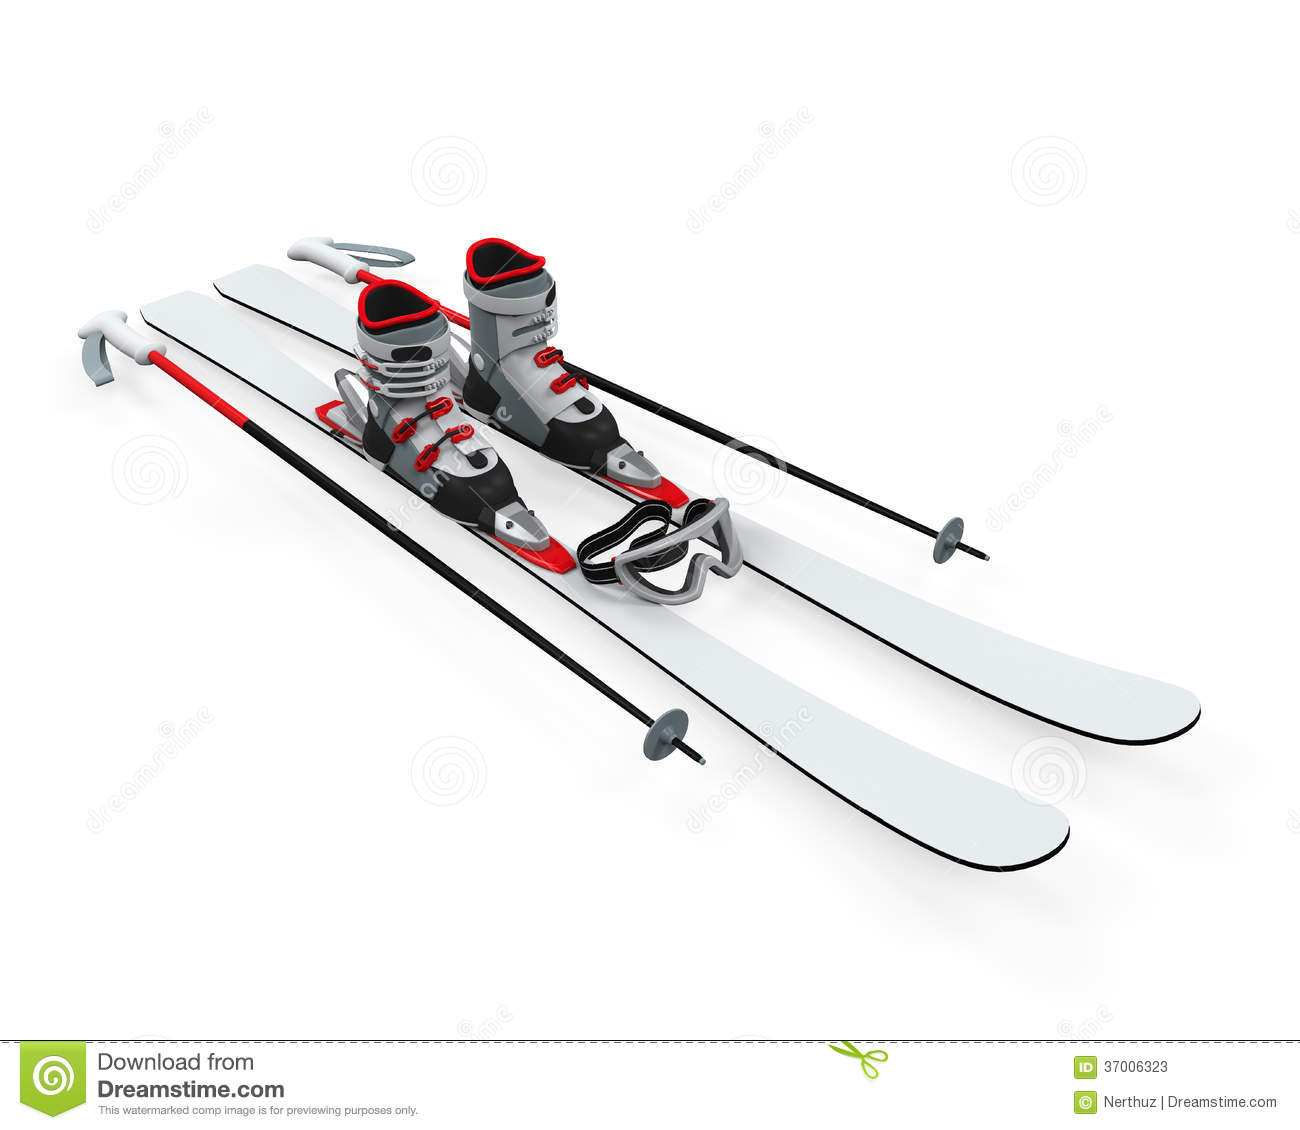 Ski Equipment on white background. 3D render.